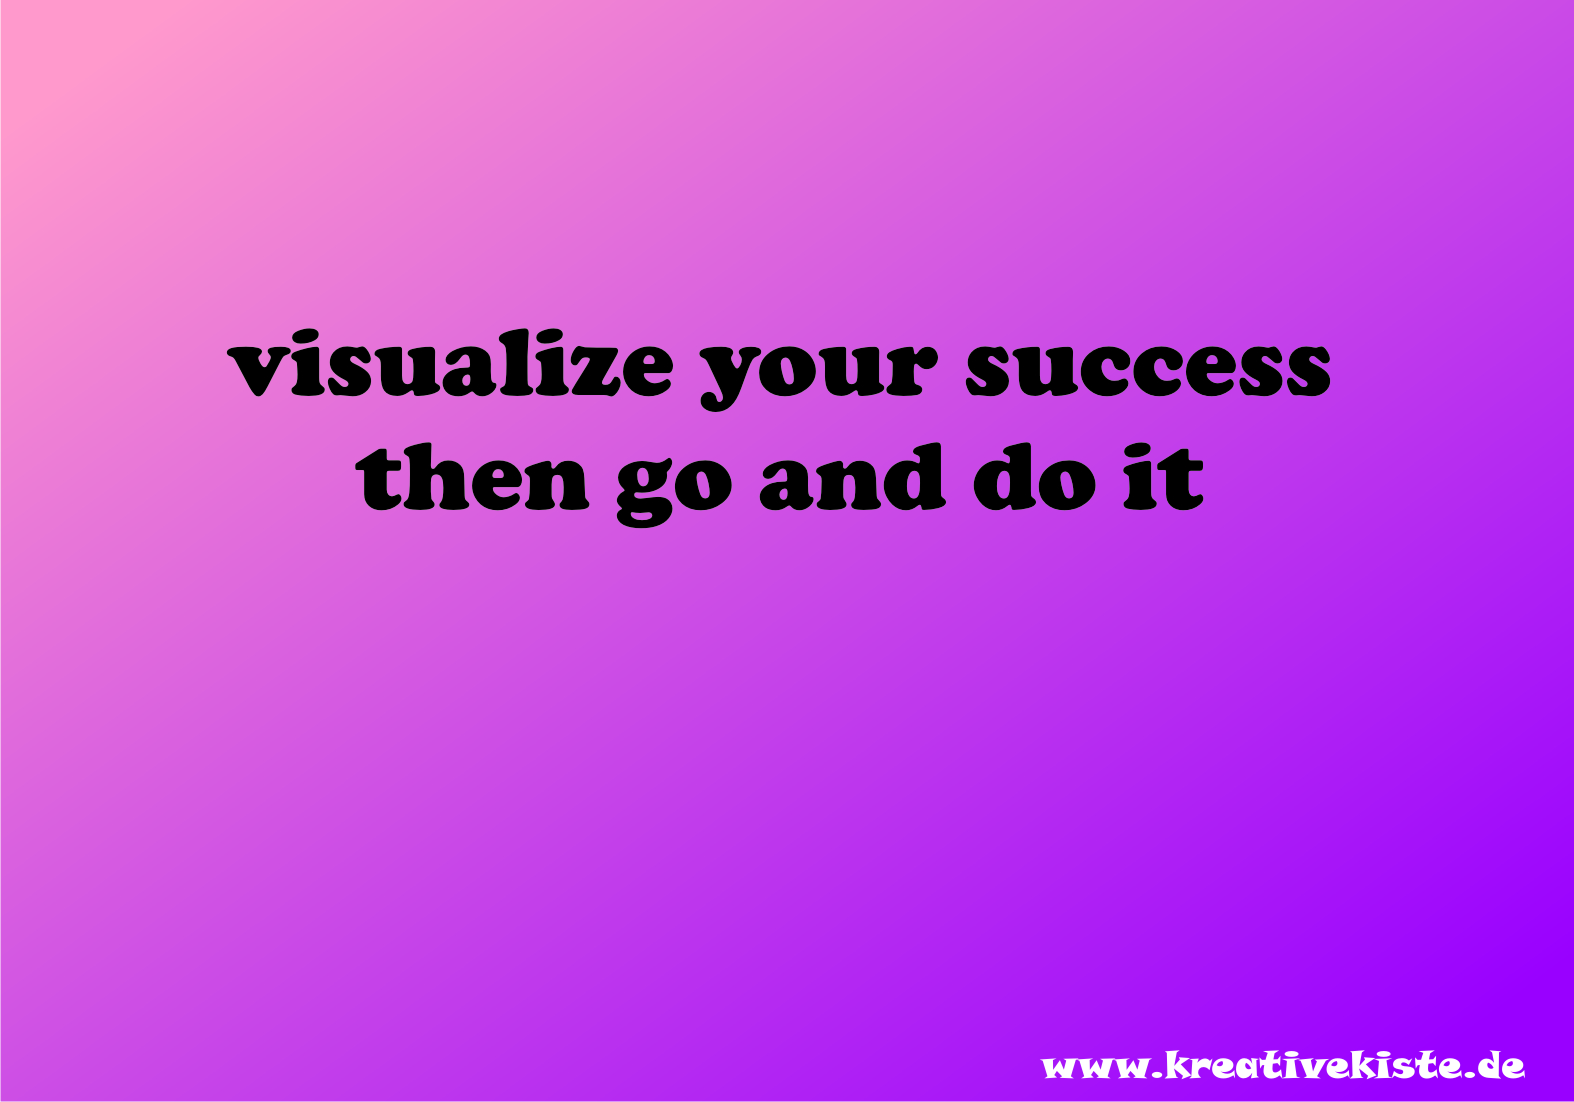 visualize your success then go and do it